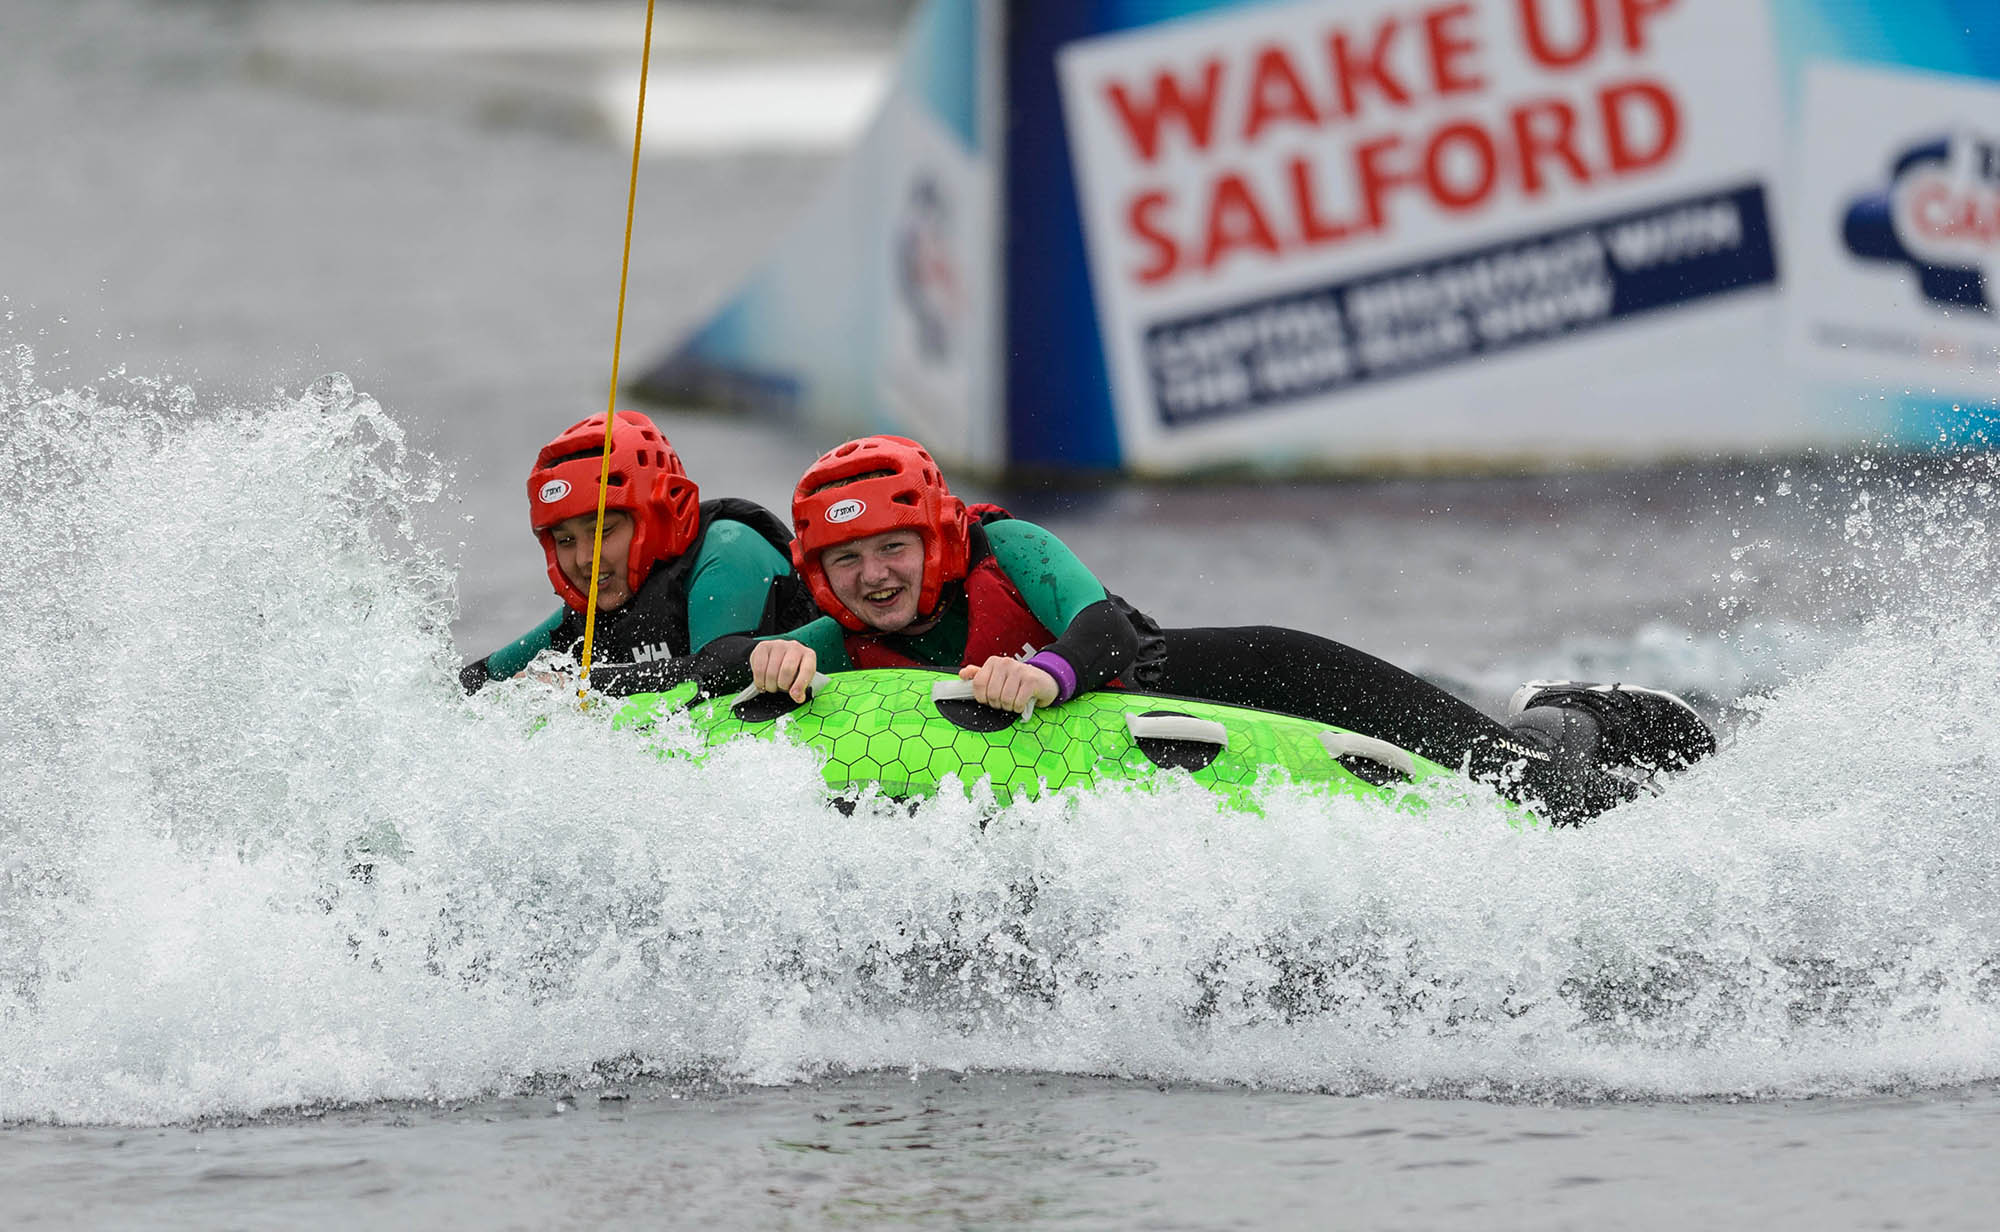 two girls on inflatable on water smiling